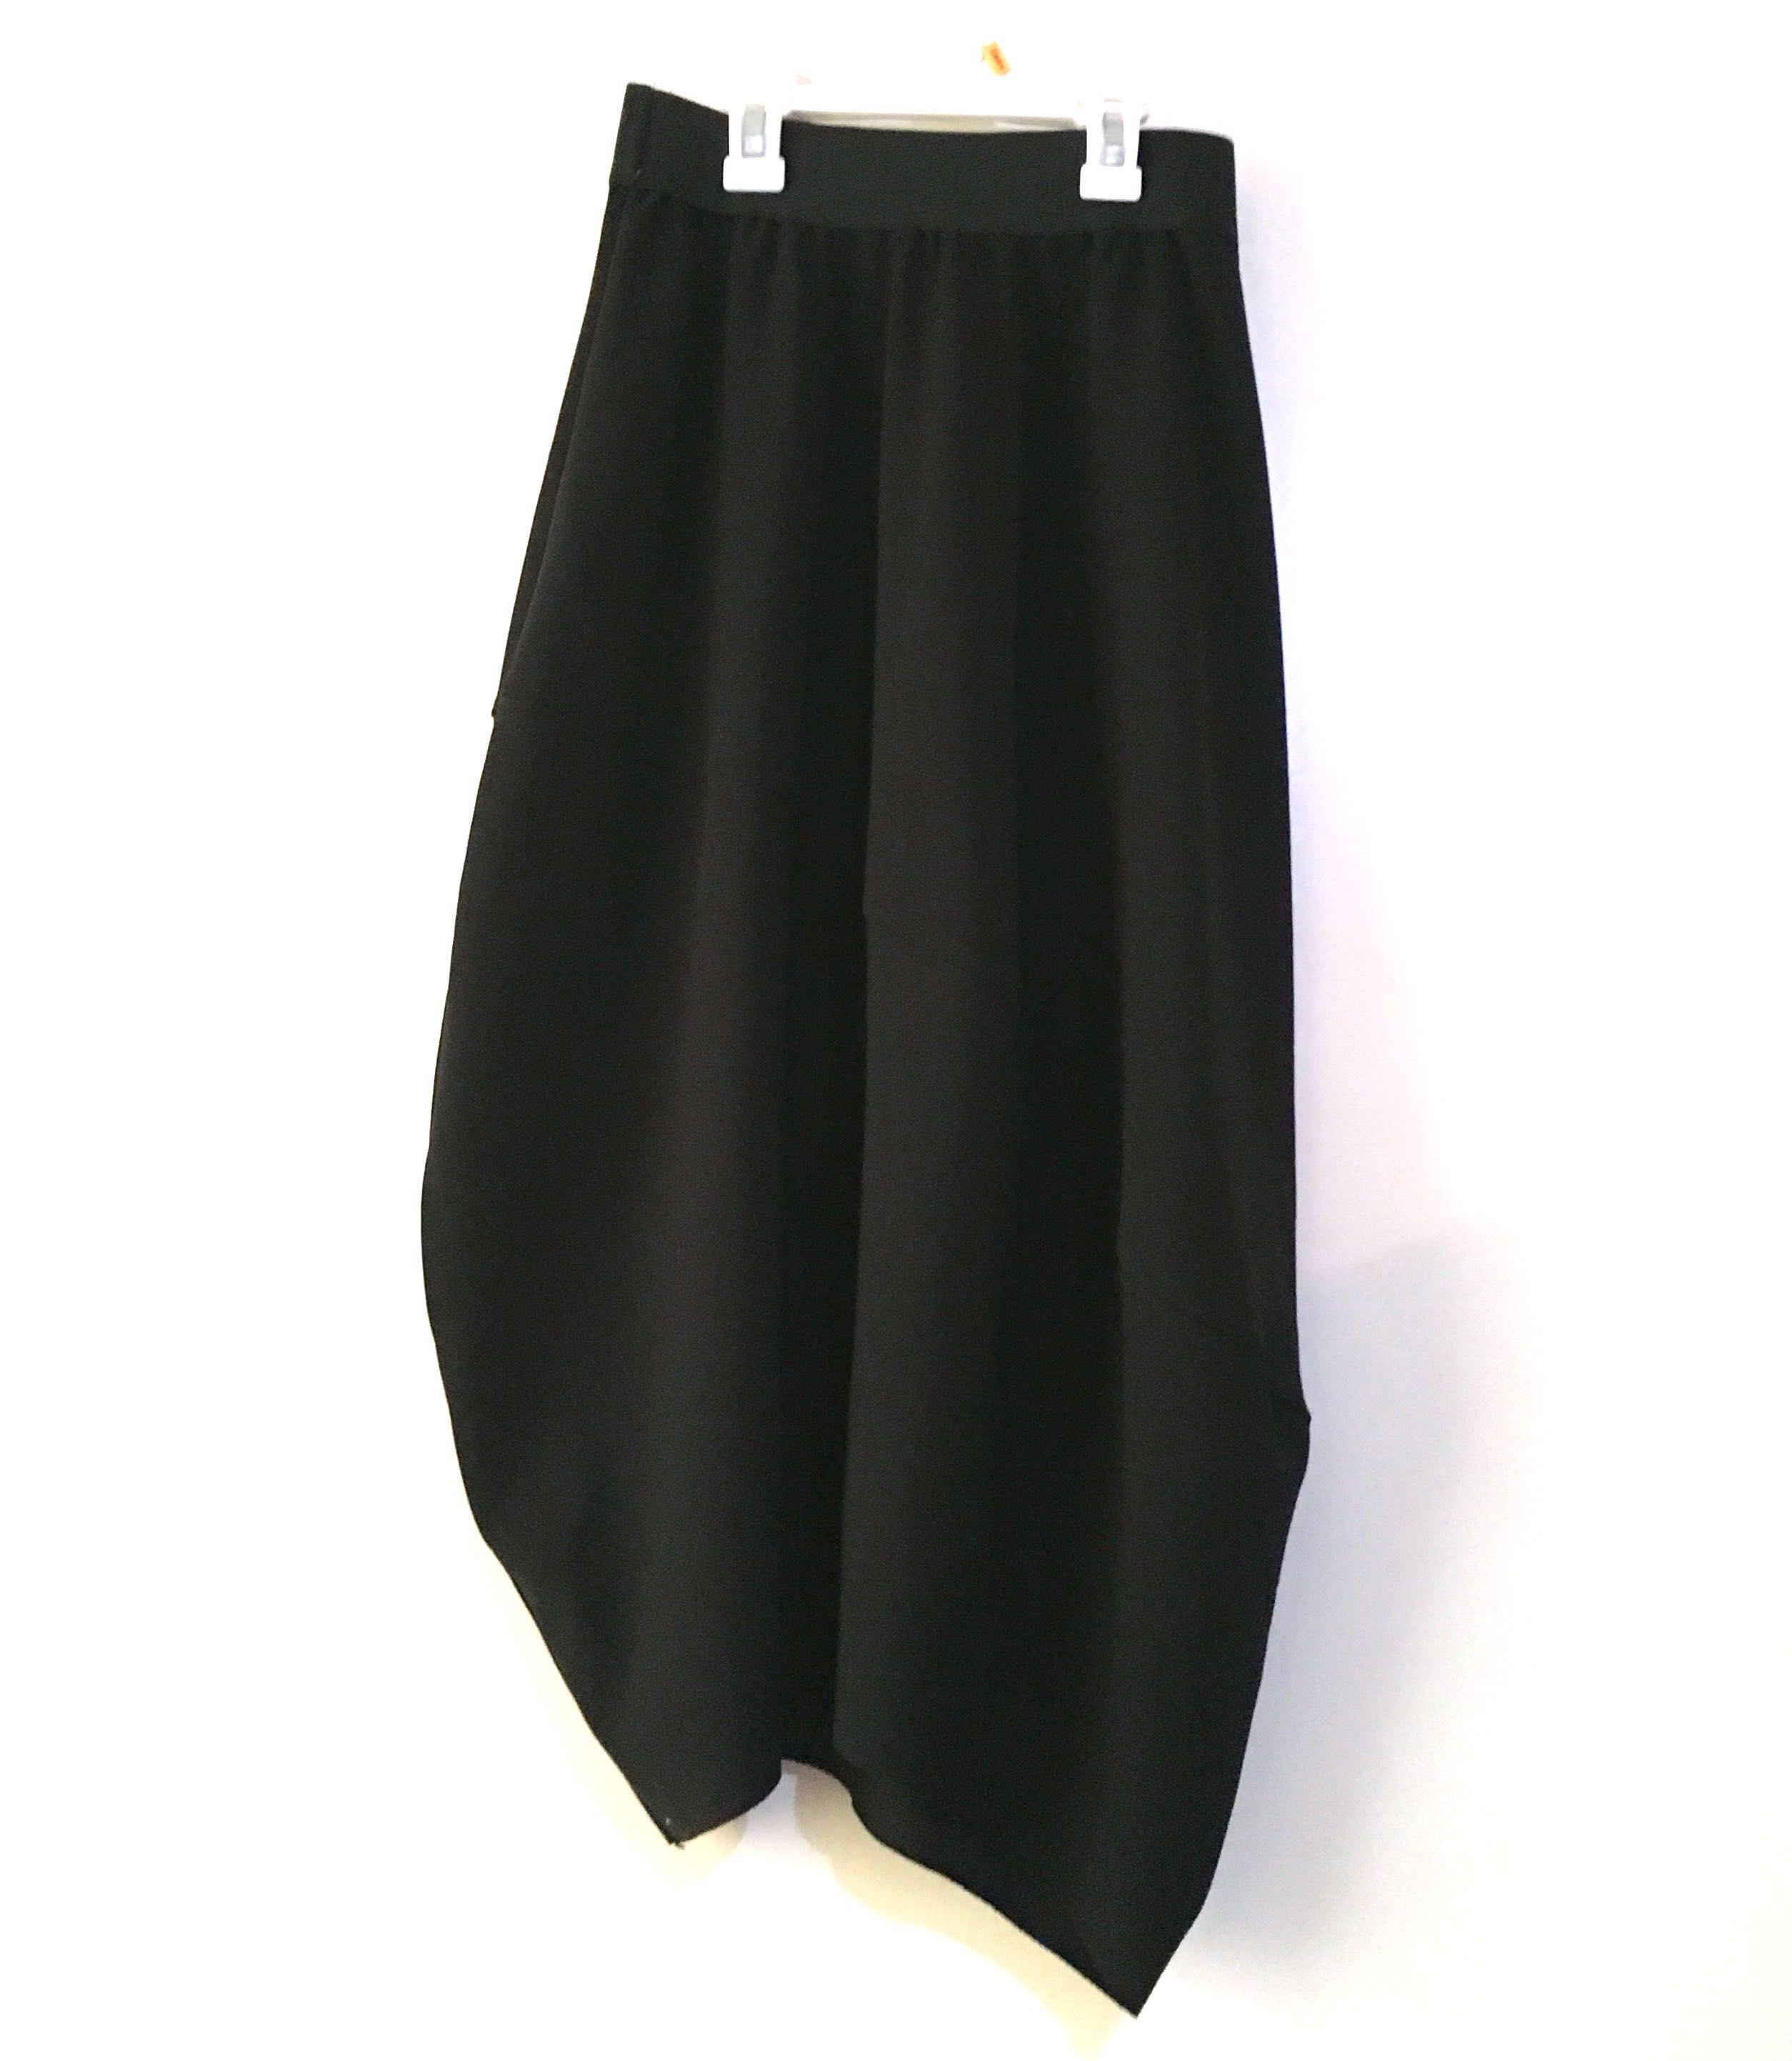 Charity Sale! Authentic Drex Fable Black Flowy Office Work Modest Long Women's Skirt Size Small to Medium